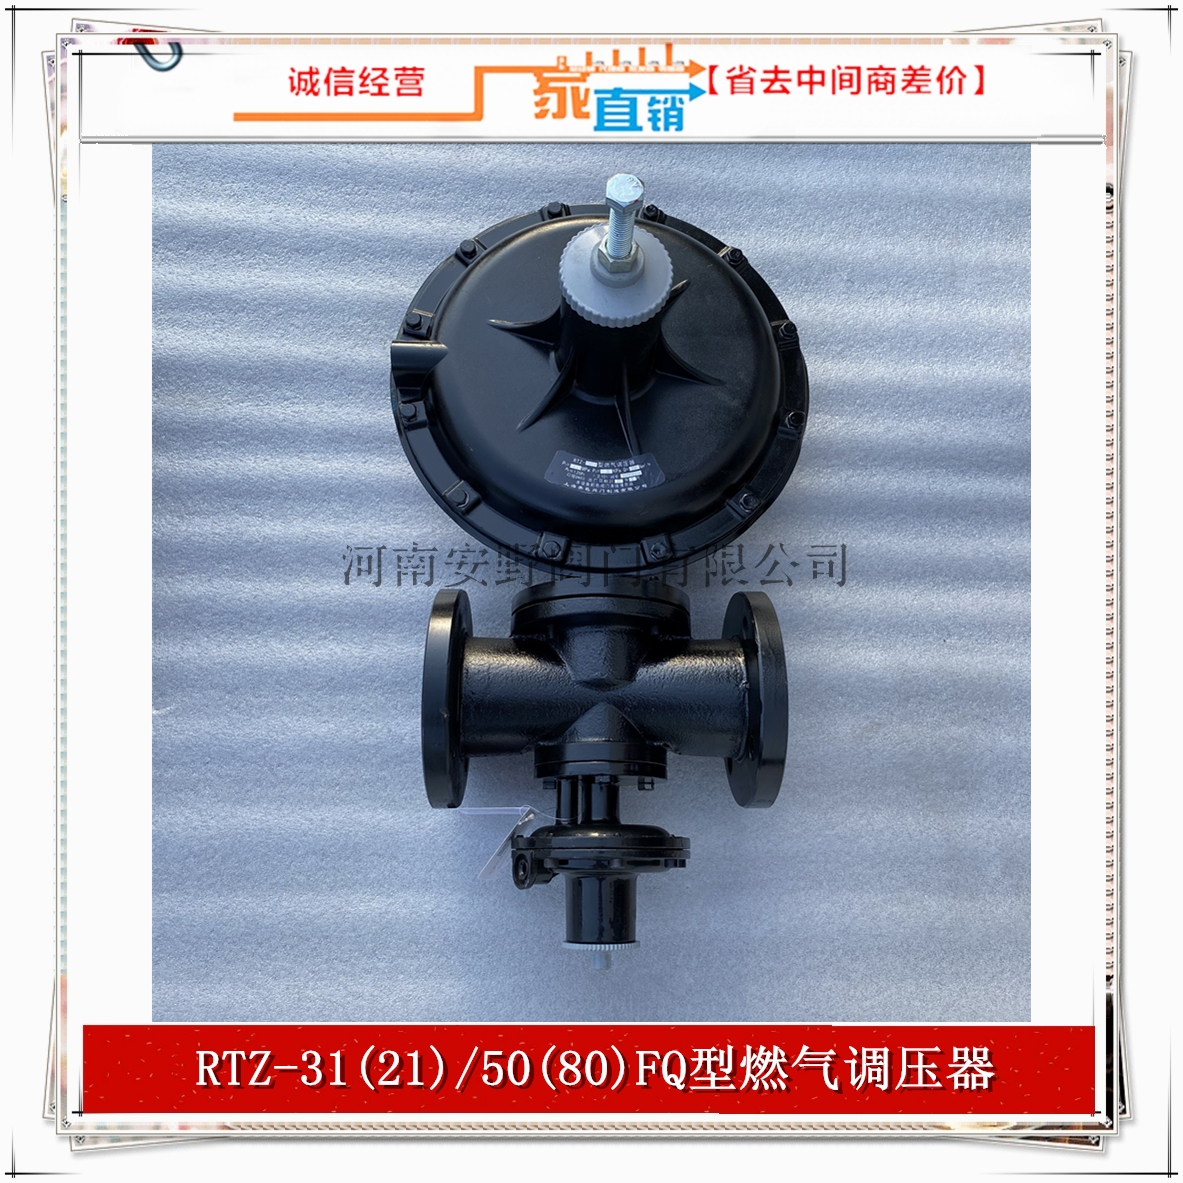 <strong><strong>RTZ-31(21)/50(80)FQ型燃气调压器</strong></strong>